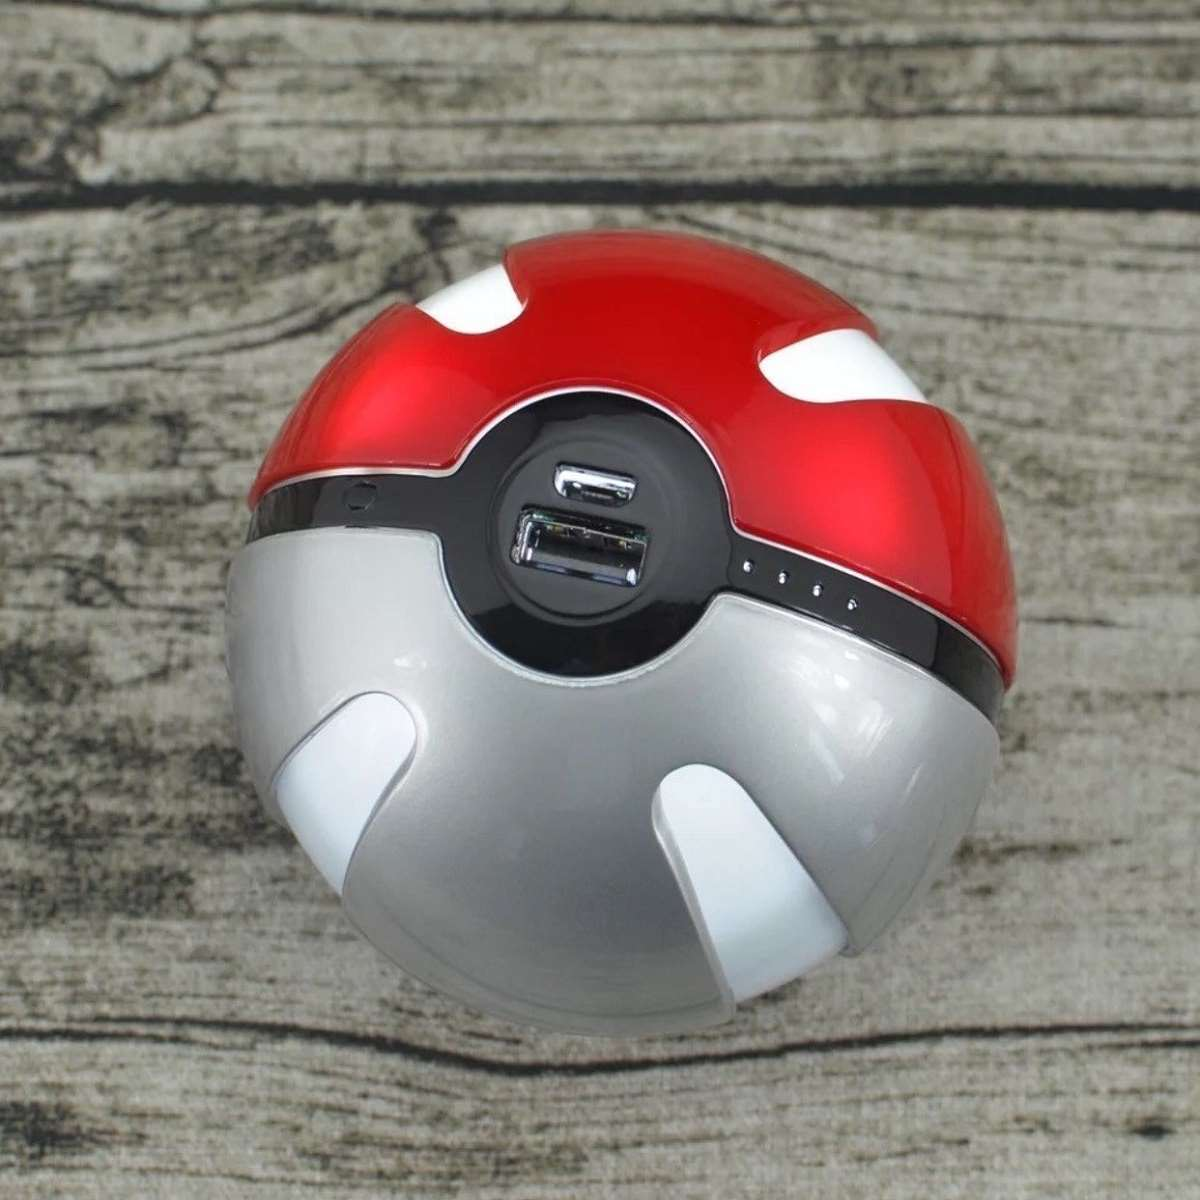 Power Bank Pokemon Pokeball 10000mah Red Daftar Harga Terlengkap Powerbank 12000mah Senter Flashlight Samsung Cell Light Source Pokeball2